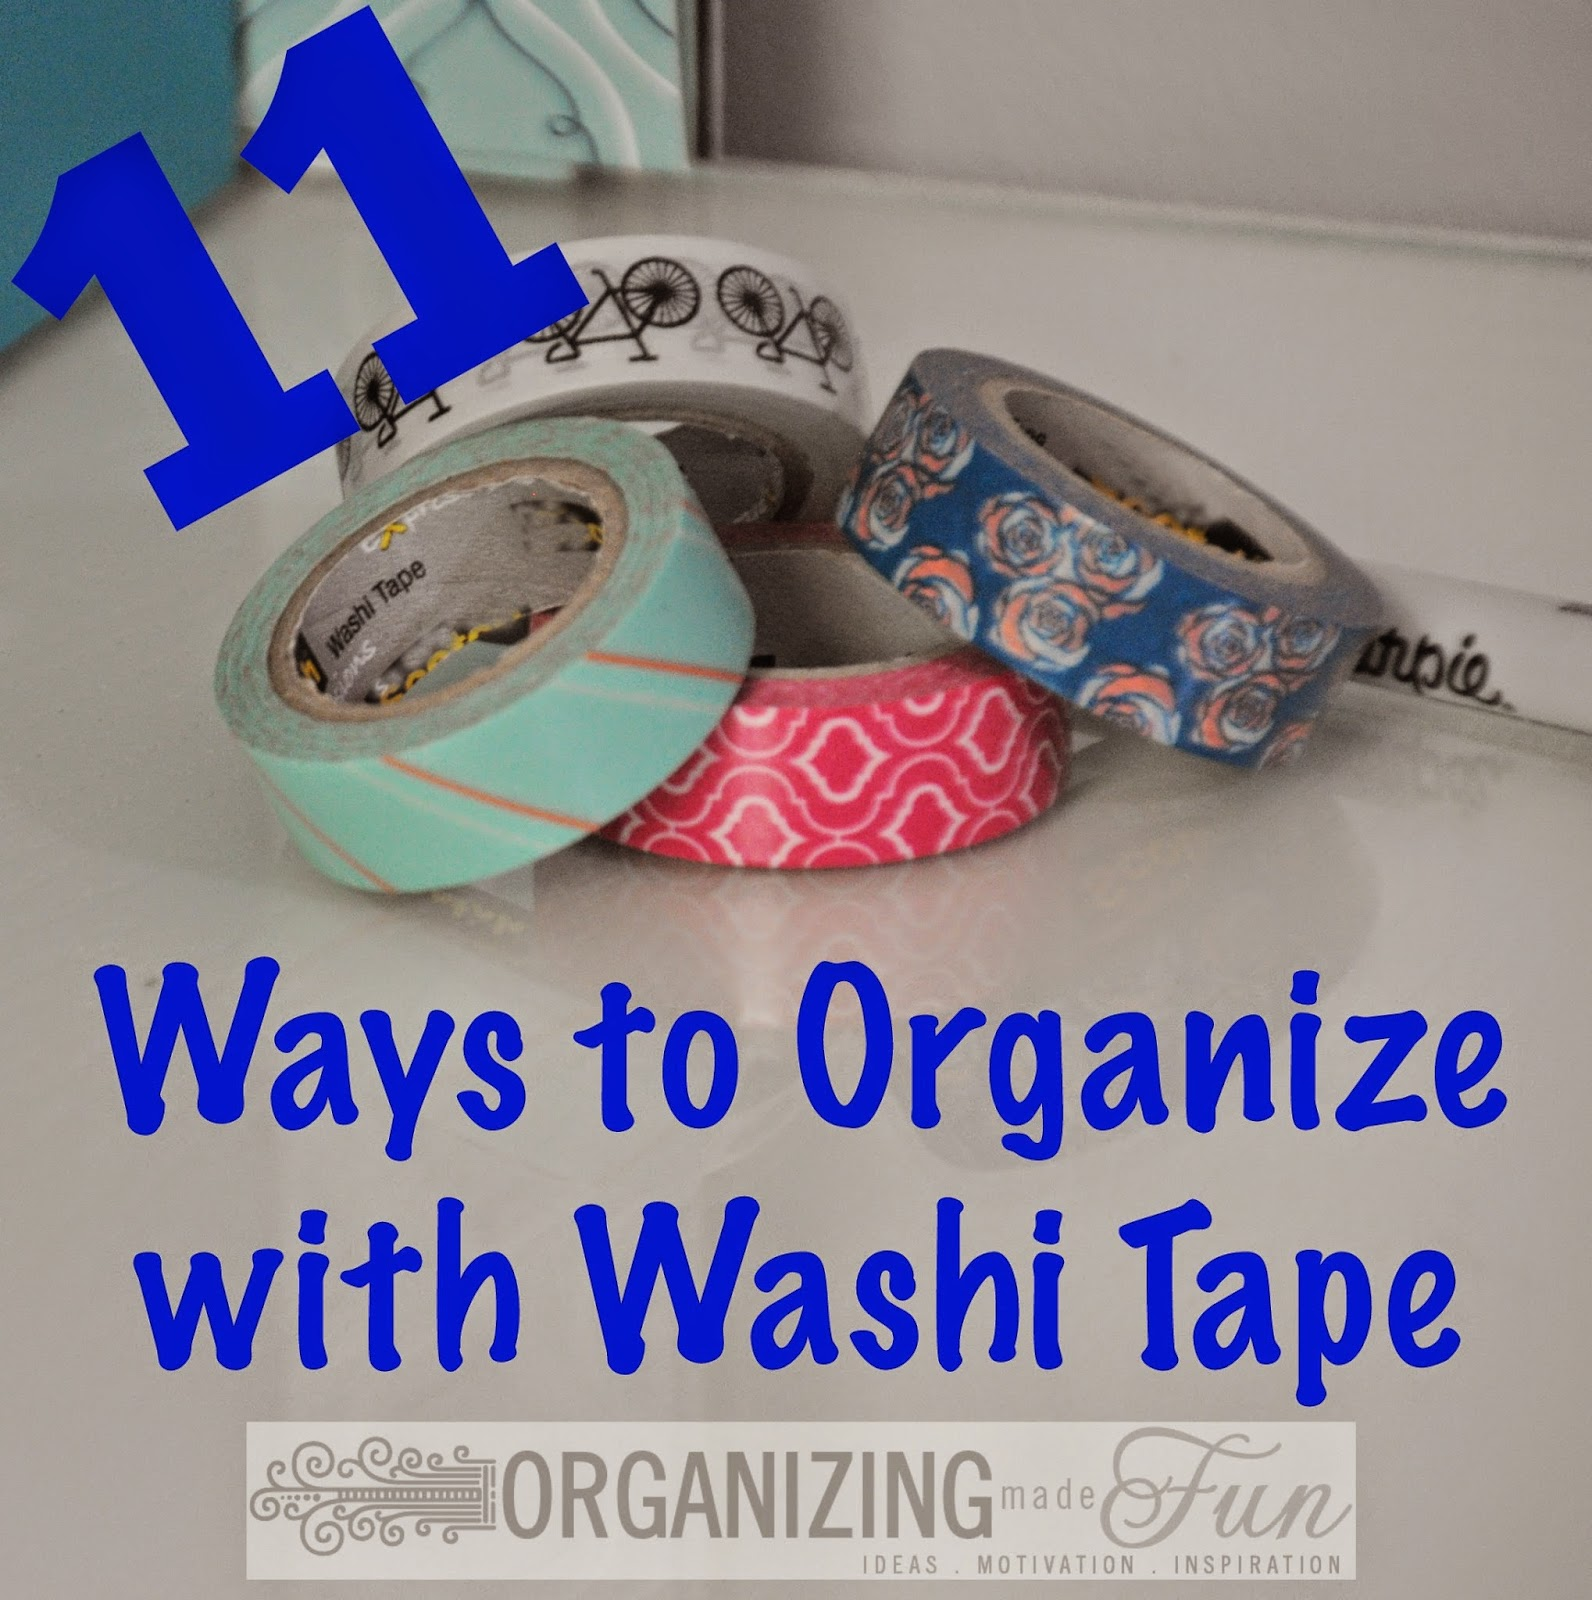 11 Ways to Organize with Washi Tape :: OrganizingMadeFun.com